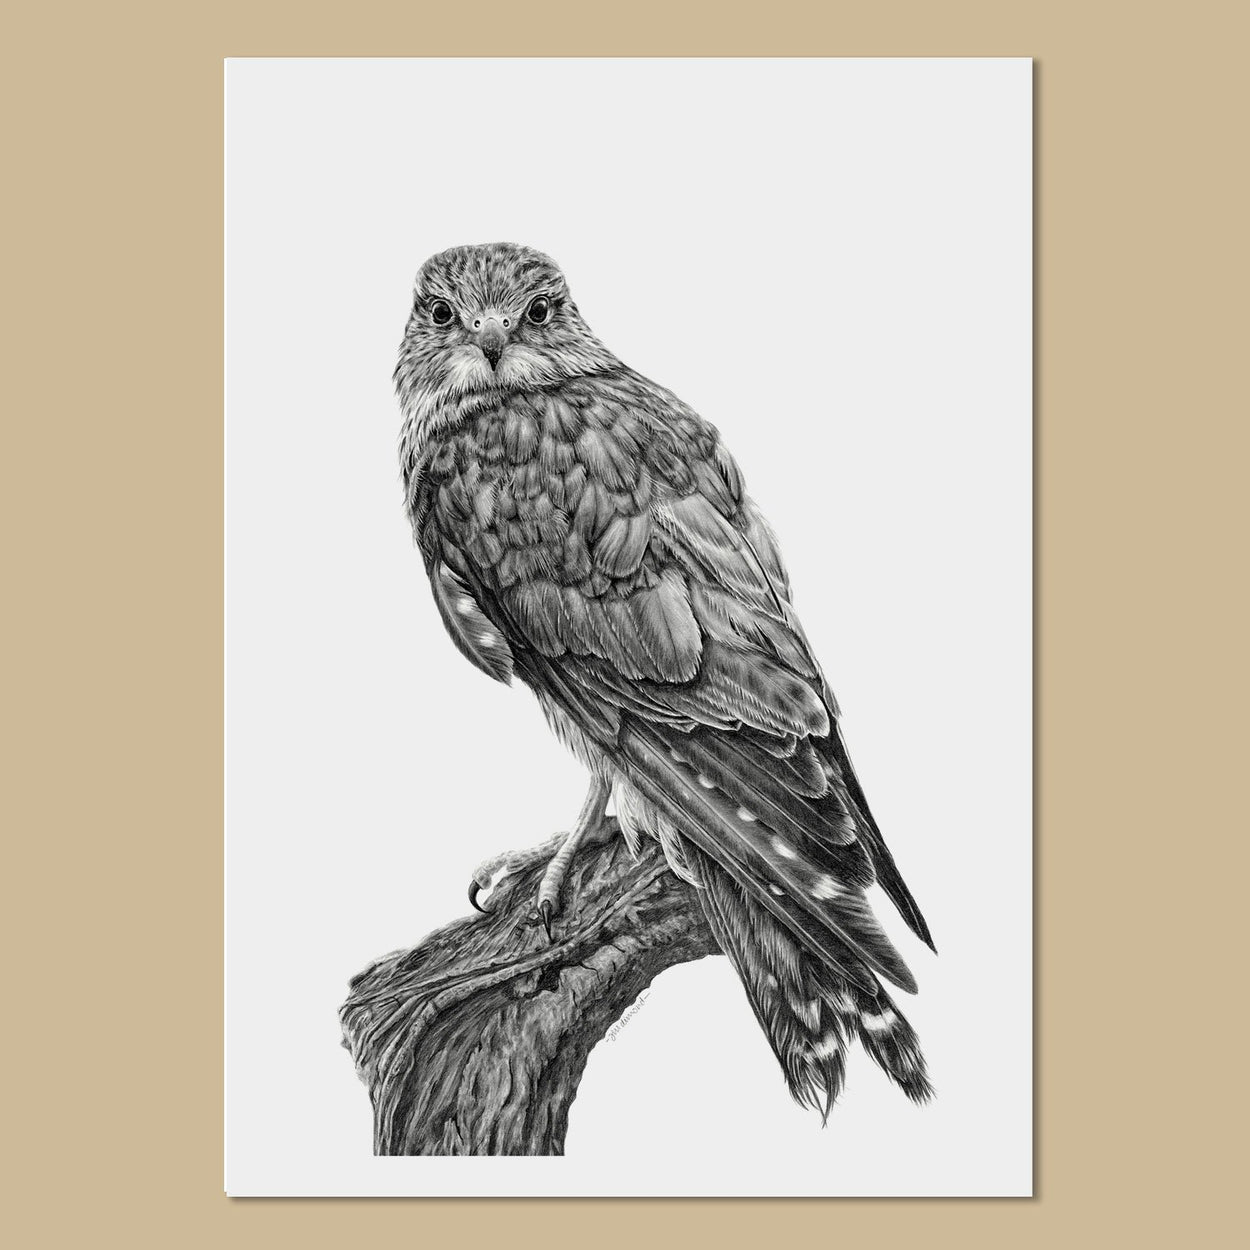 Female Merlin Art Prints - The Thriving Wild